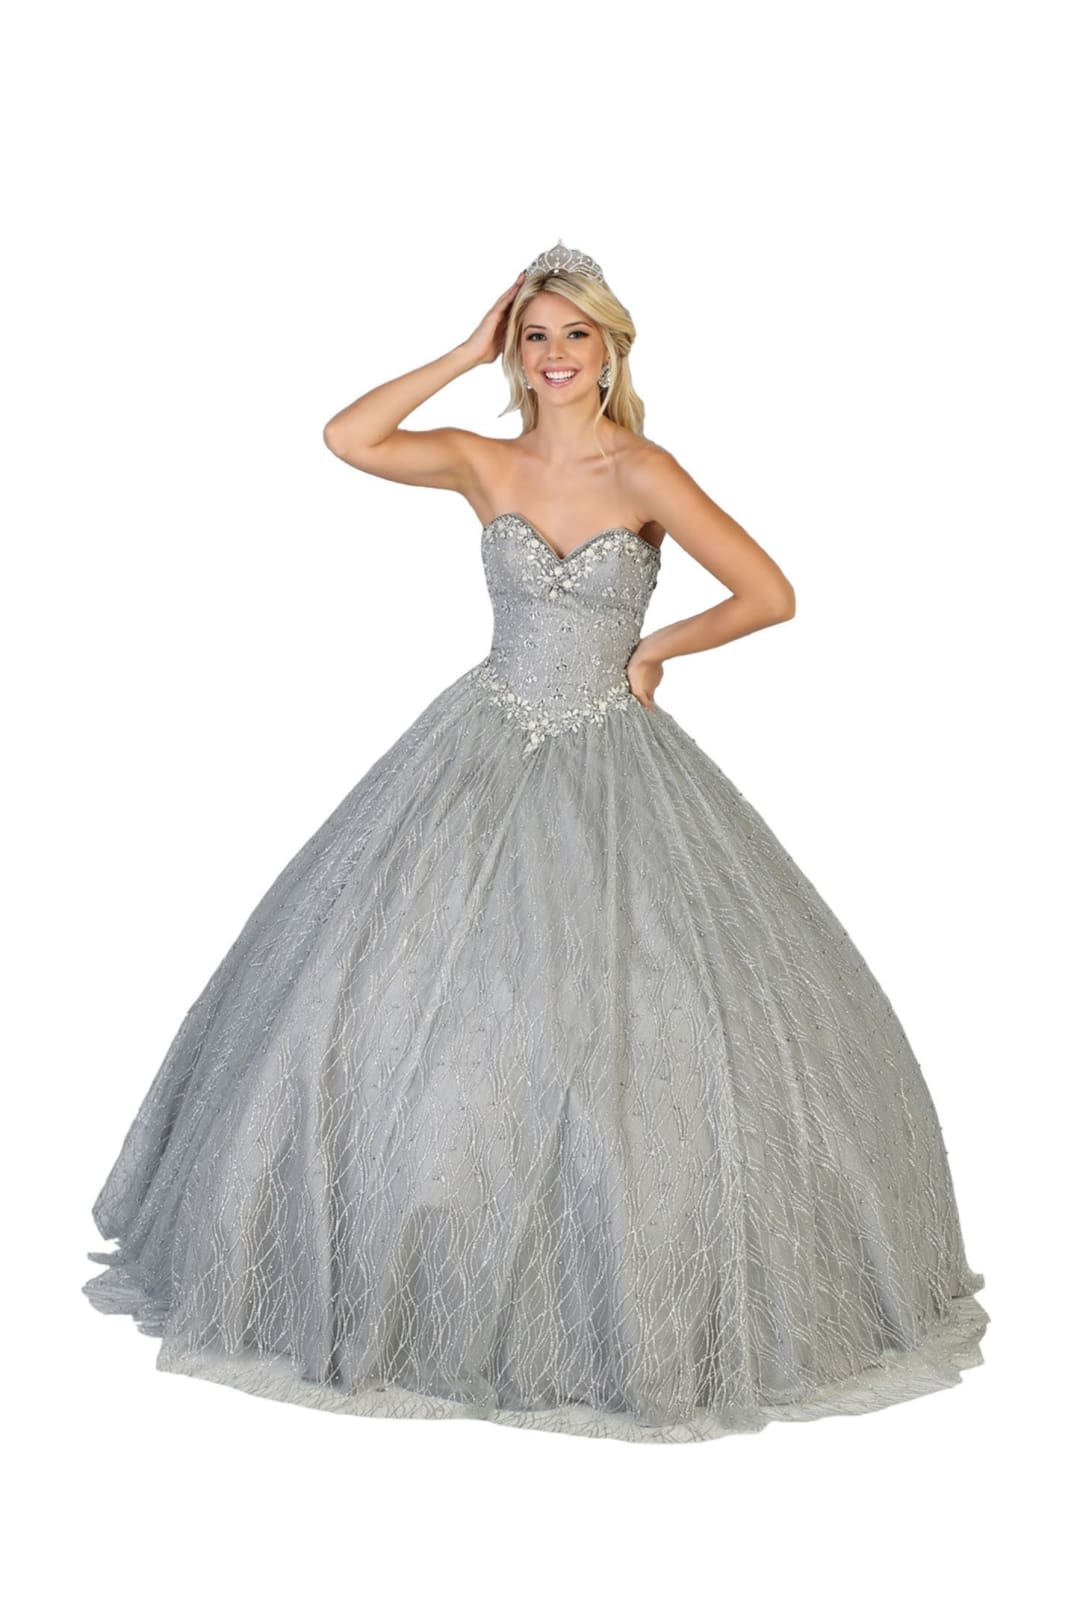 Sweetheart Ball Gown - Silver / 2